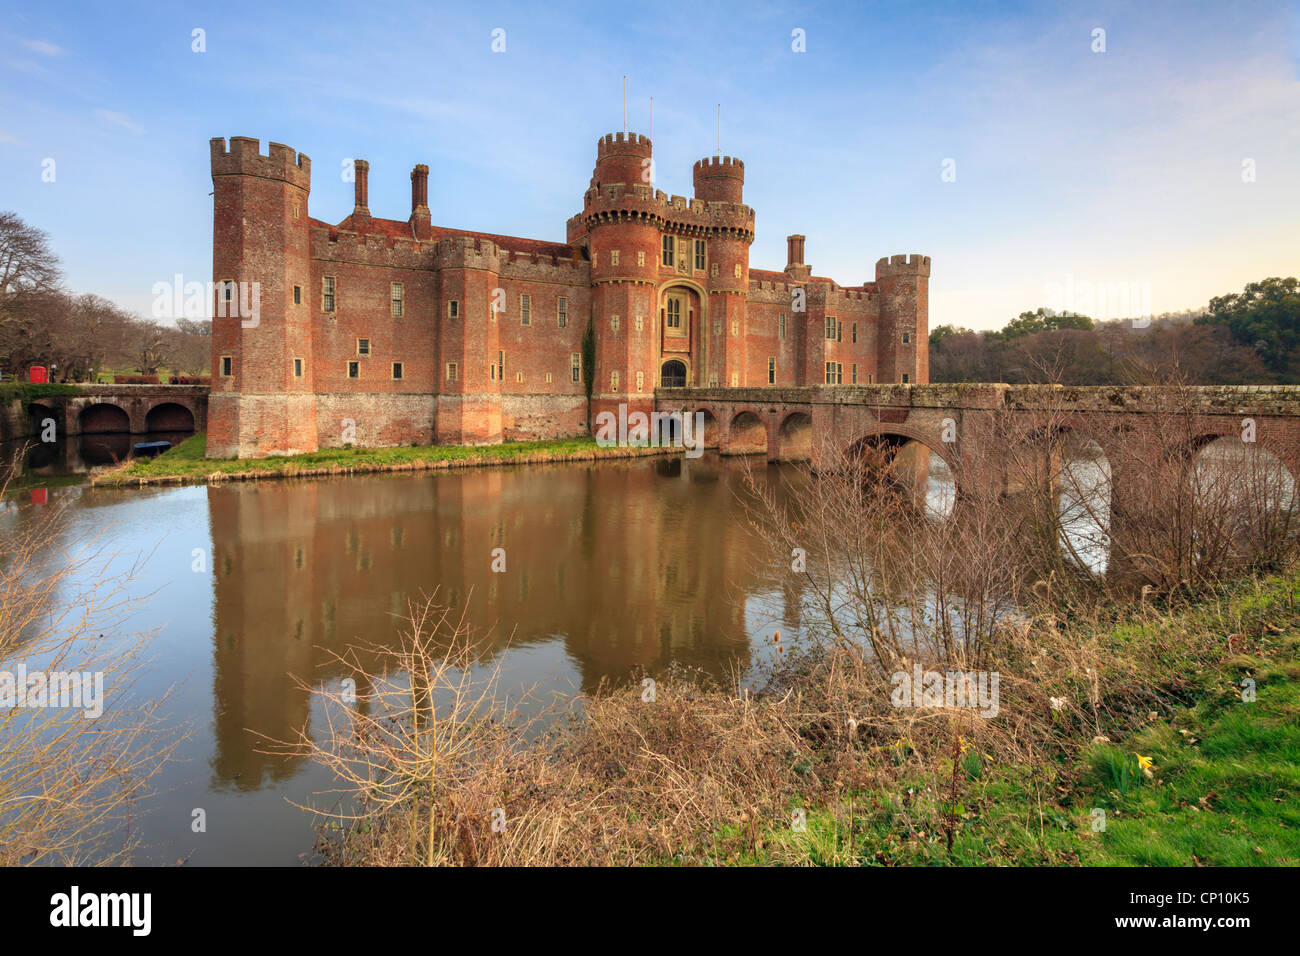 Herstmonceux Castle in East Sussex - Stock Image